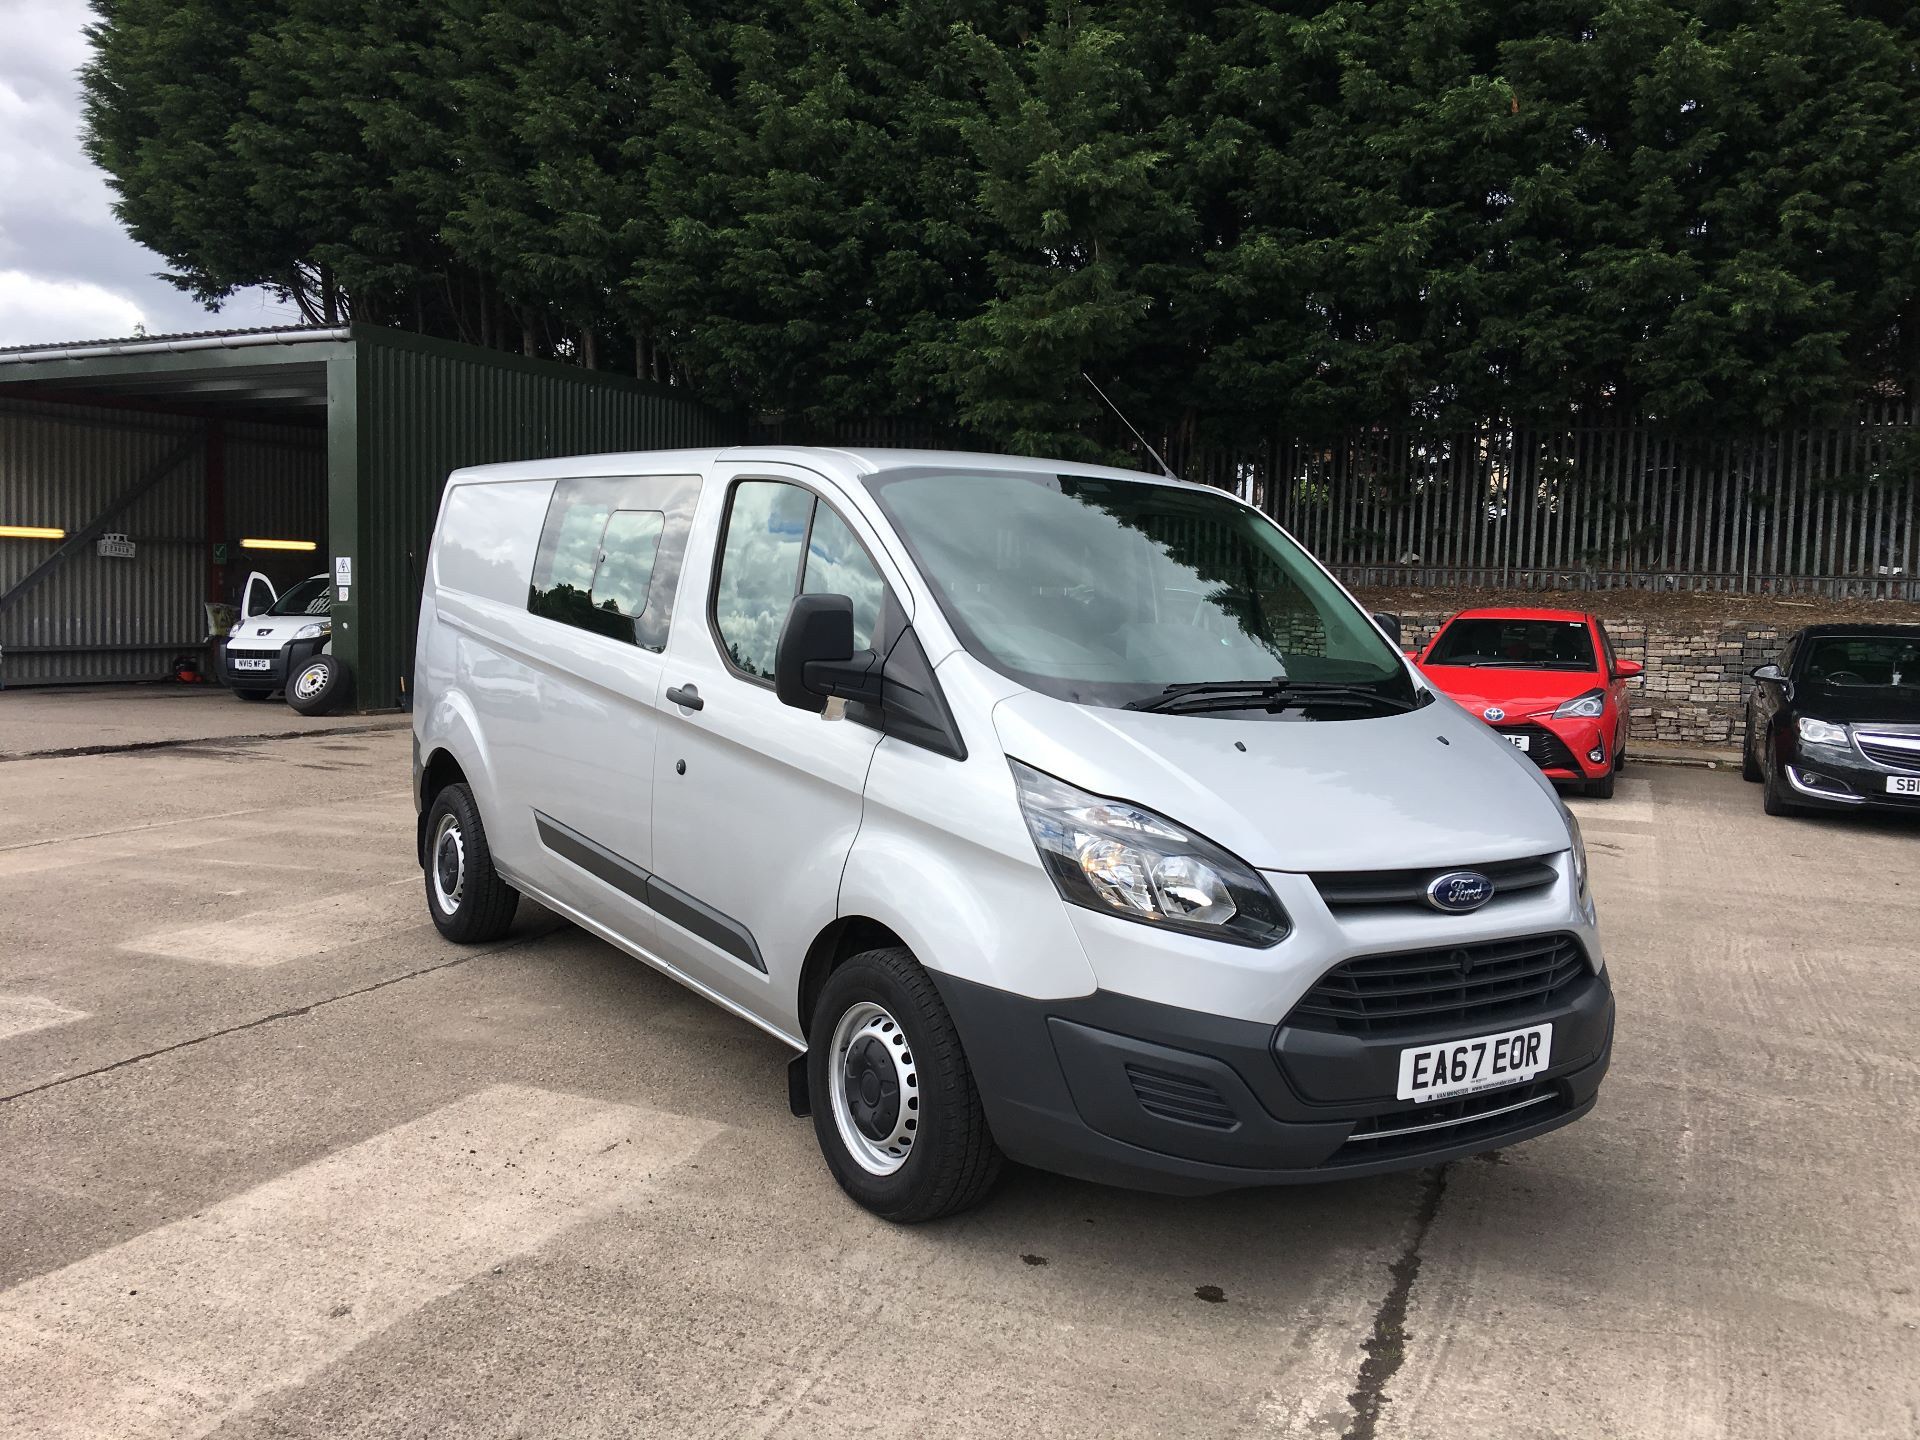 2017 Ford Transit Custom 290 L2 DIESEL FWD 2.0 TDCI 105PS  LOW ROOF DOUBLE CAB EURO 6 (EA67EOR)